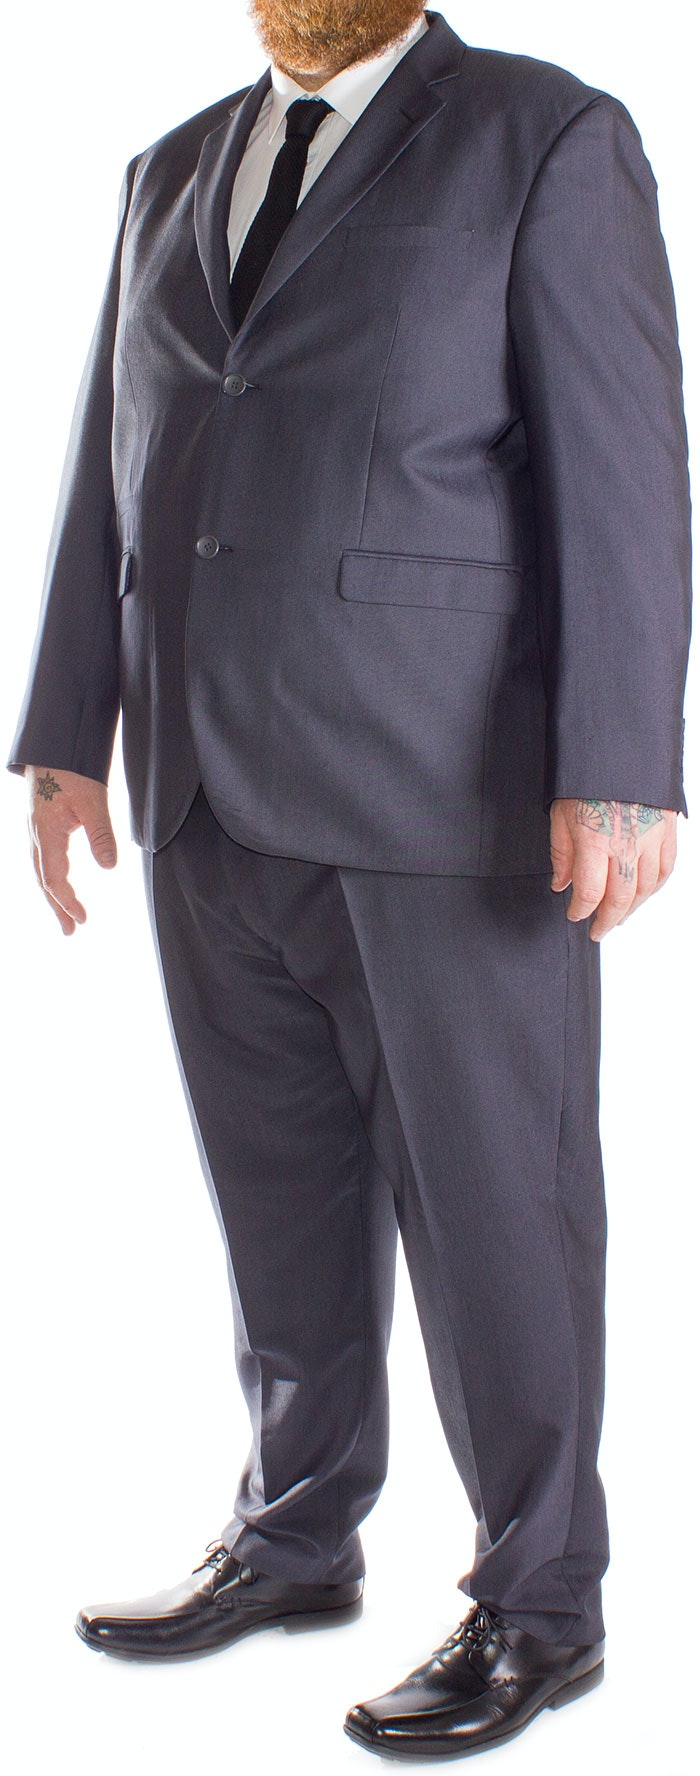 Alben Sharp Suit Grey